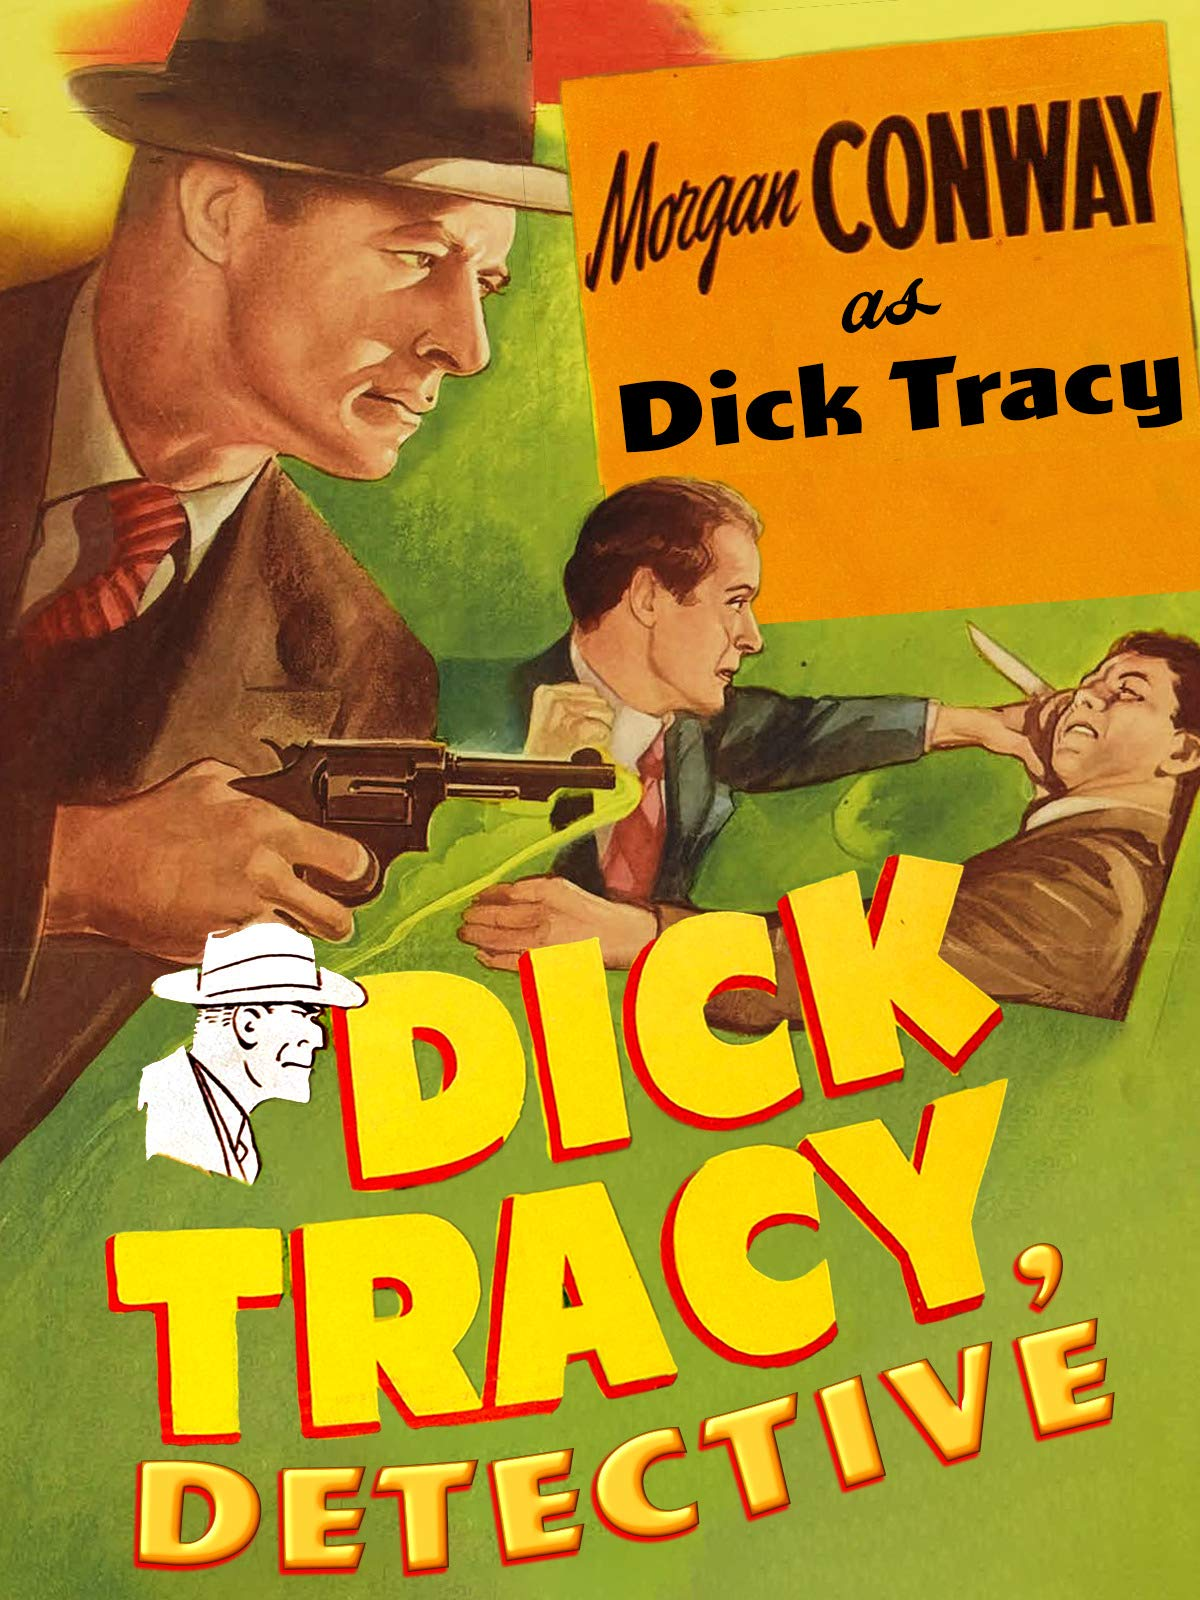 Dick Tracy Detective - Morgan Conway As Dick Tracy